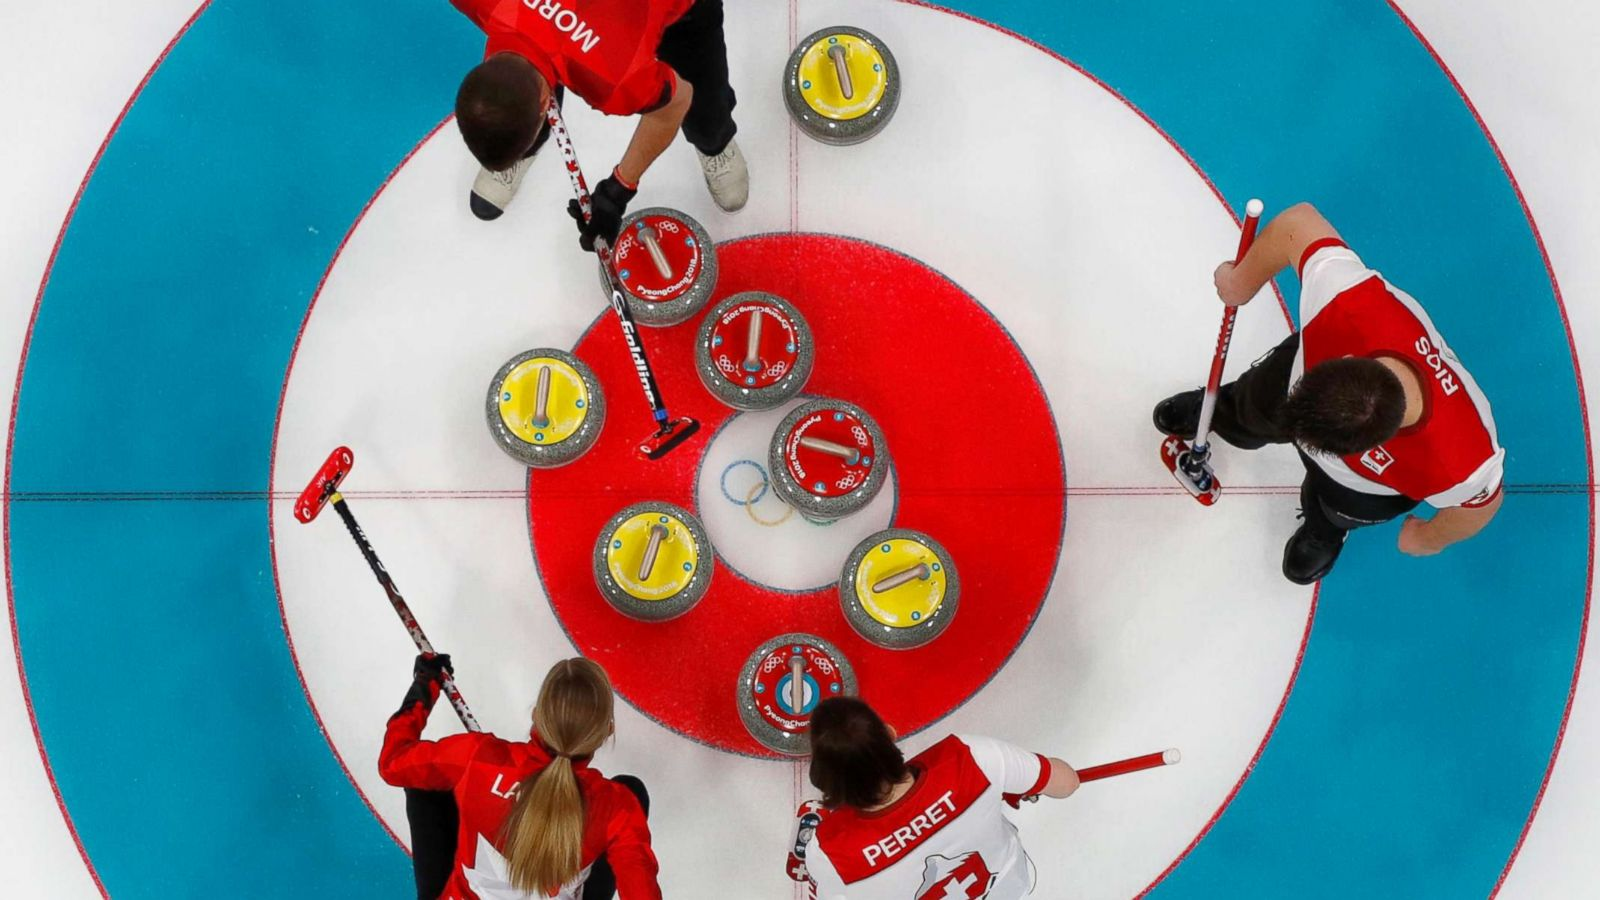 curling.jpg (156.84 Kb)